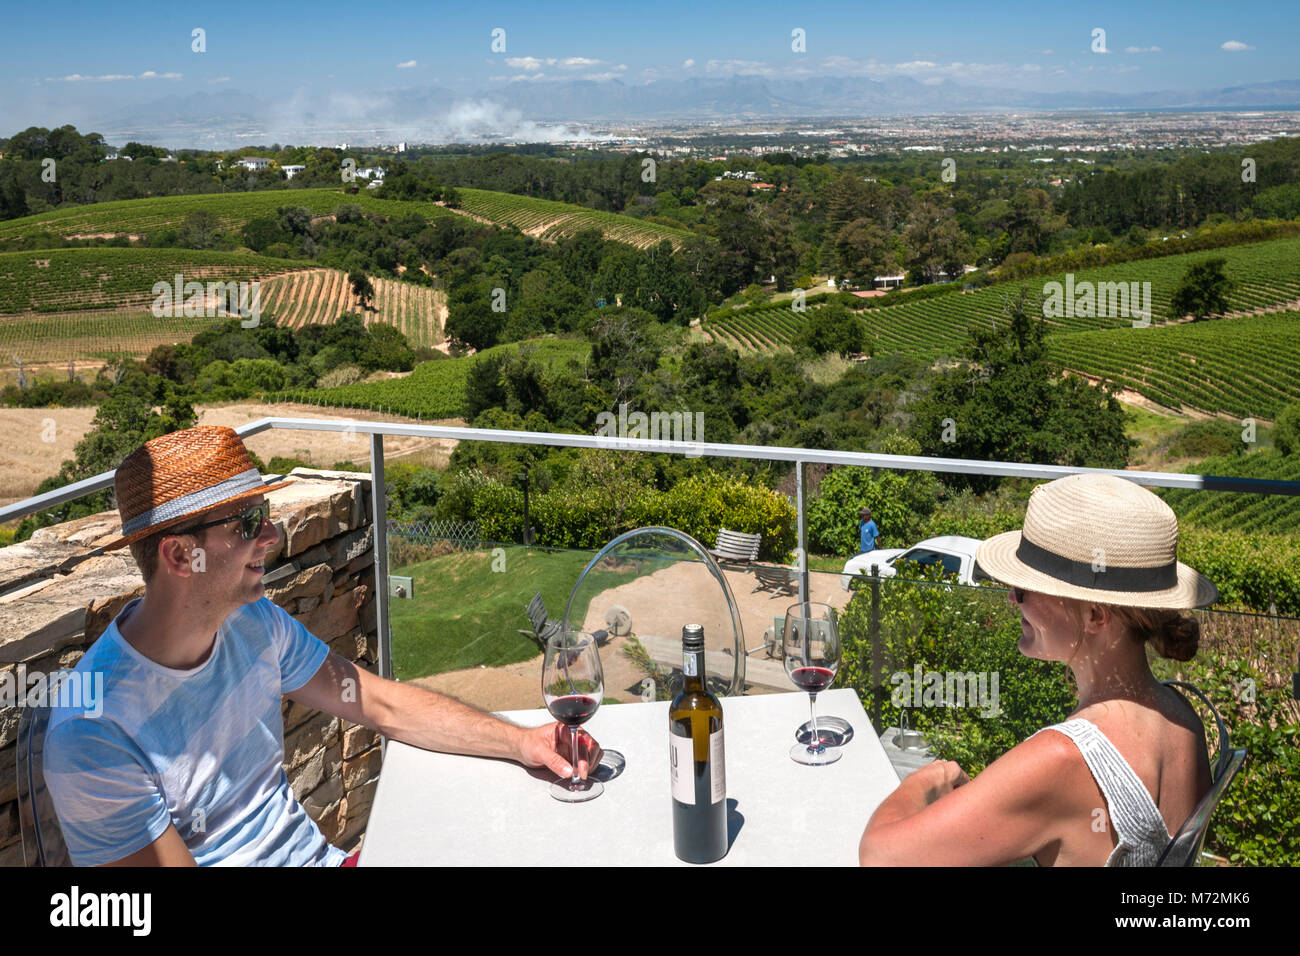 Couple on the terrace of Beau Constantia wine estate in Constantia, Cape Town. - Stock Image